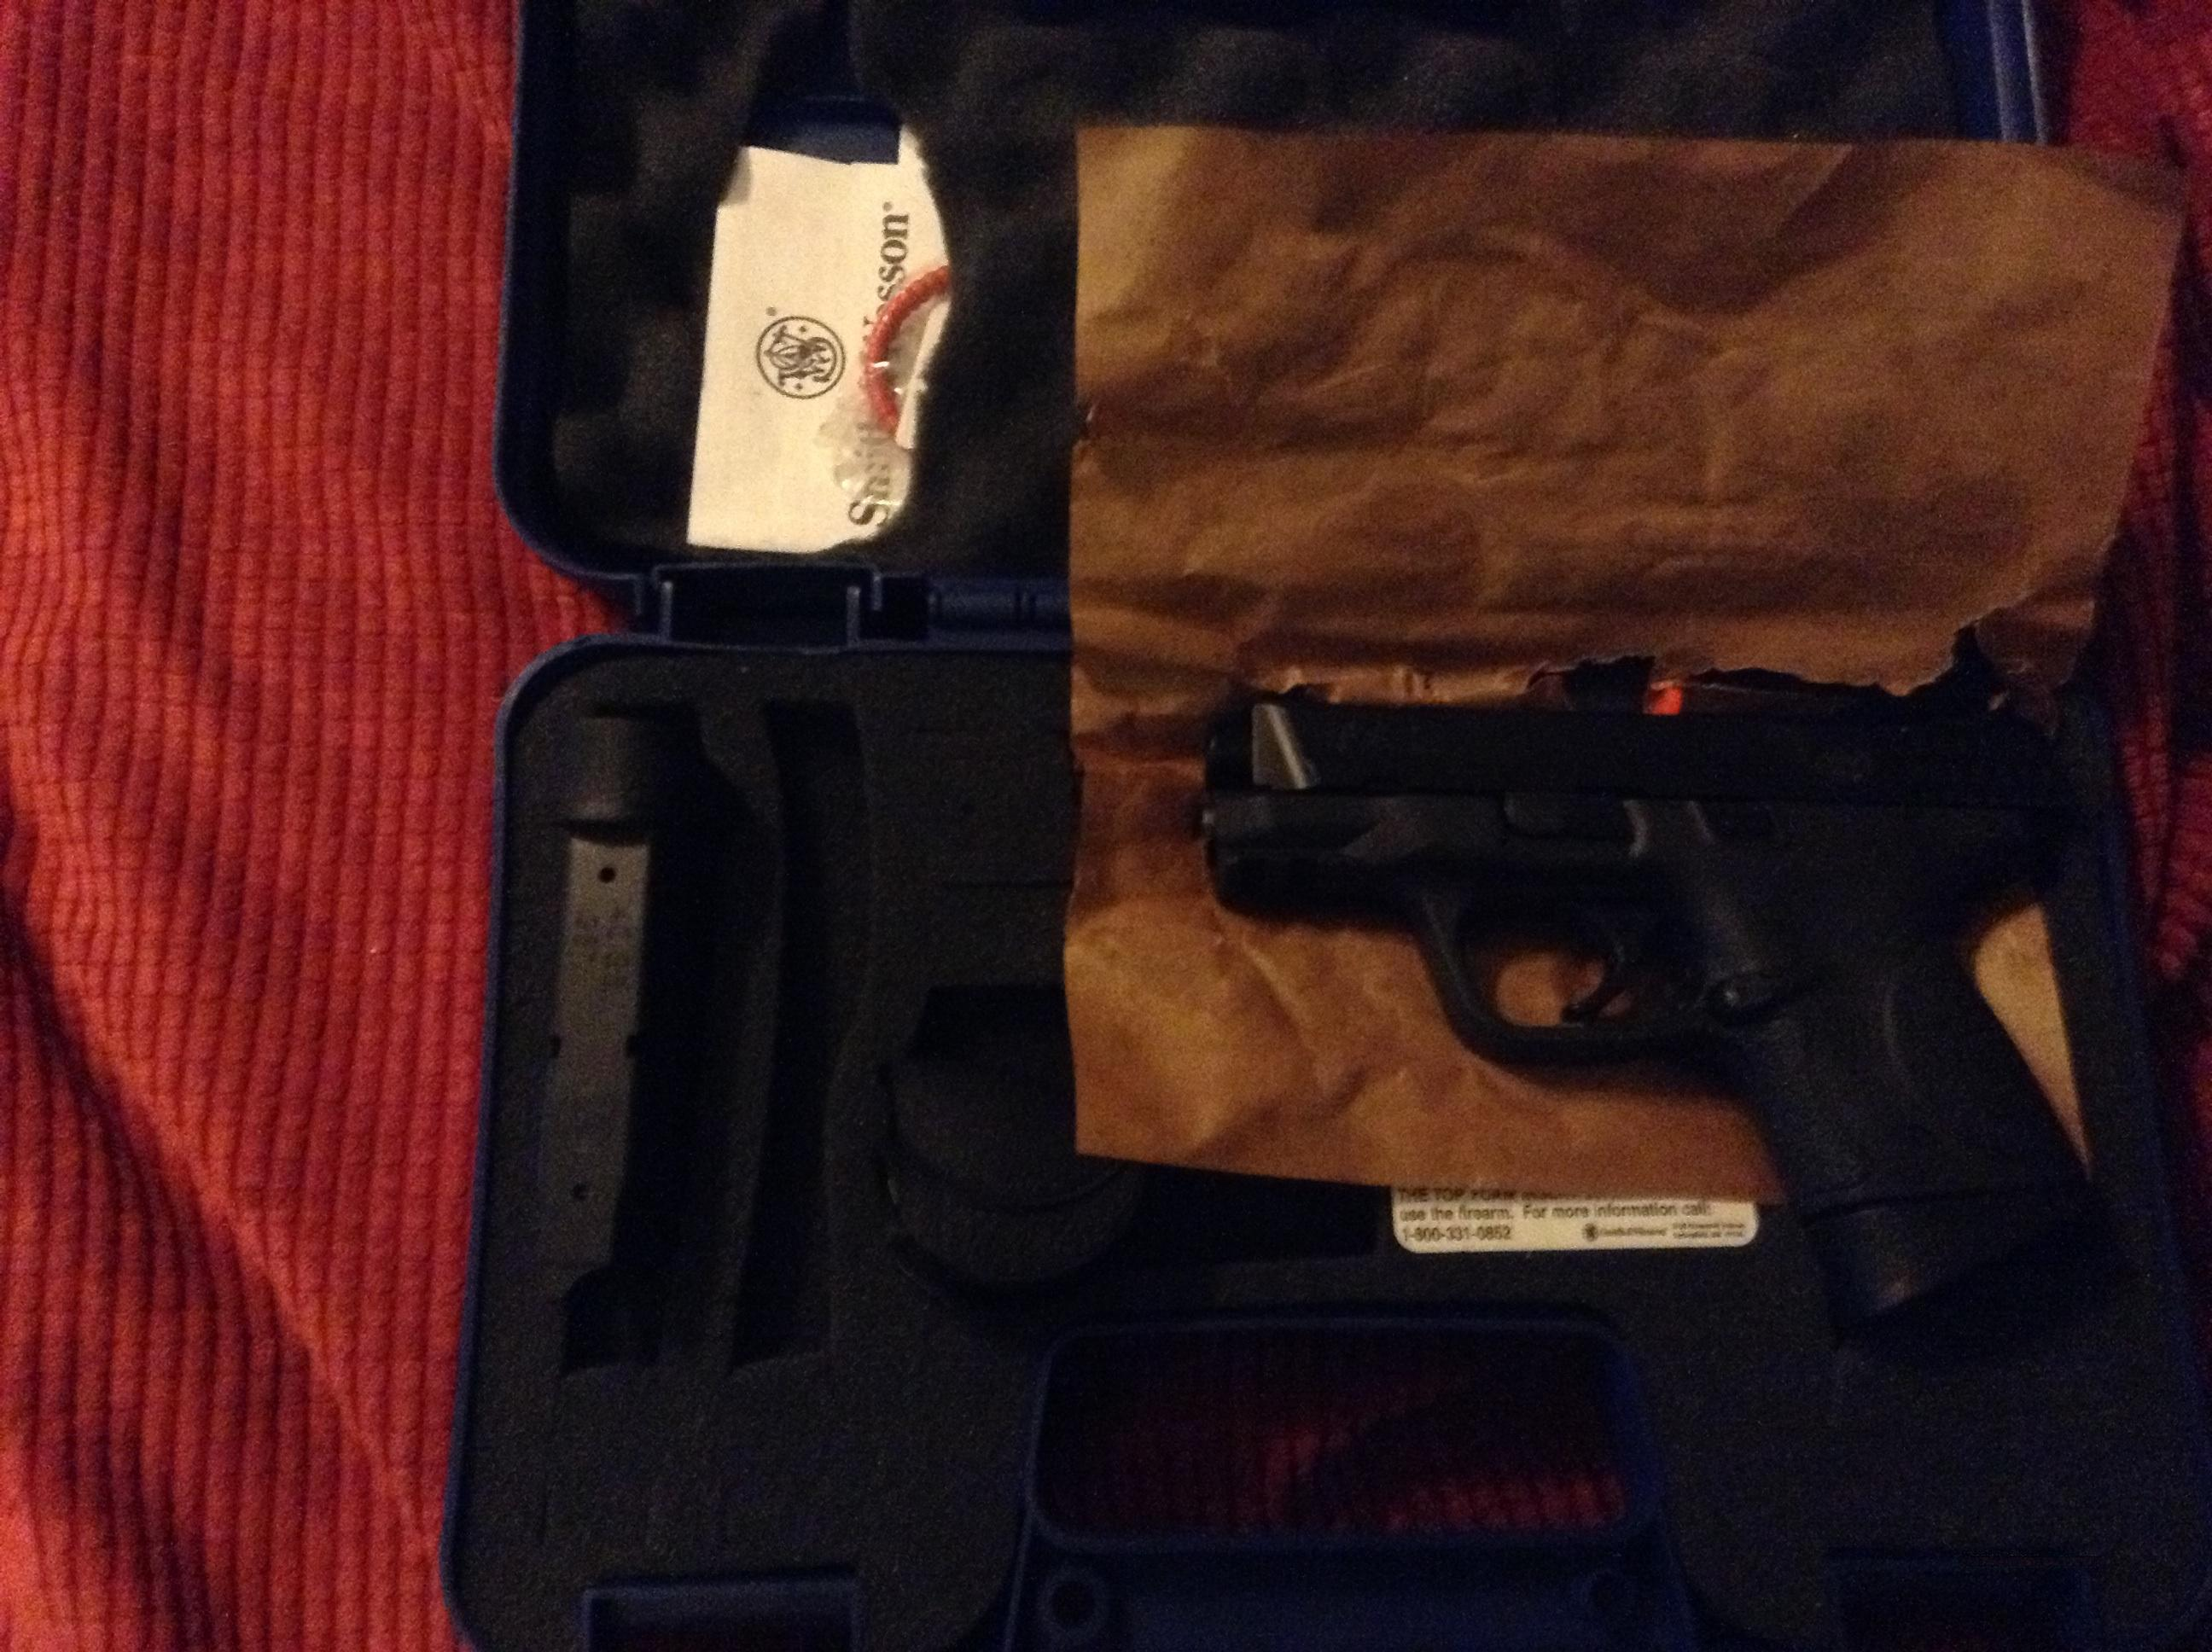 Smith&wesson m&p compact 40 cal  Guns > Pistols > Smith & Wesson Pistols - Autos > Polymer Frame